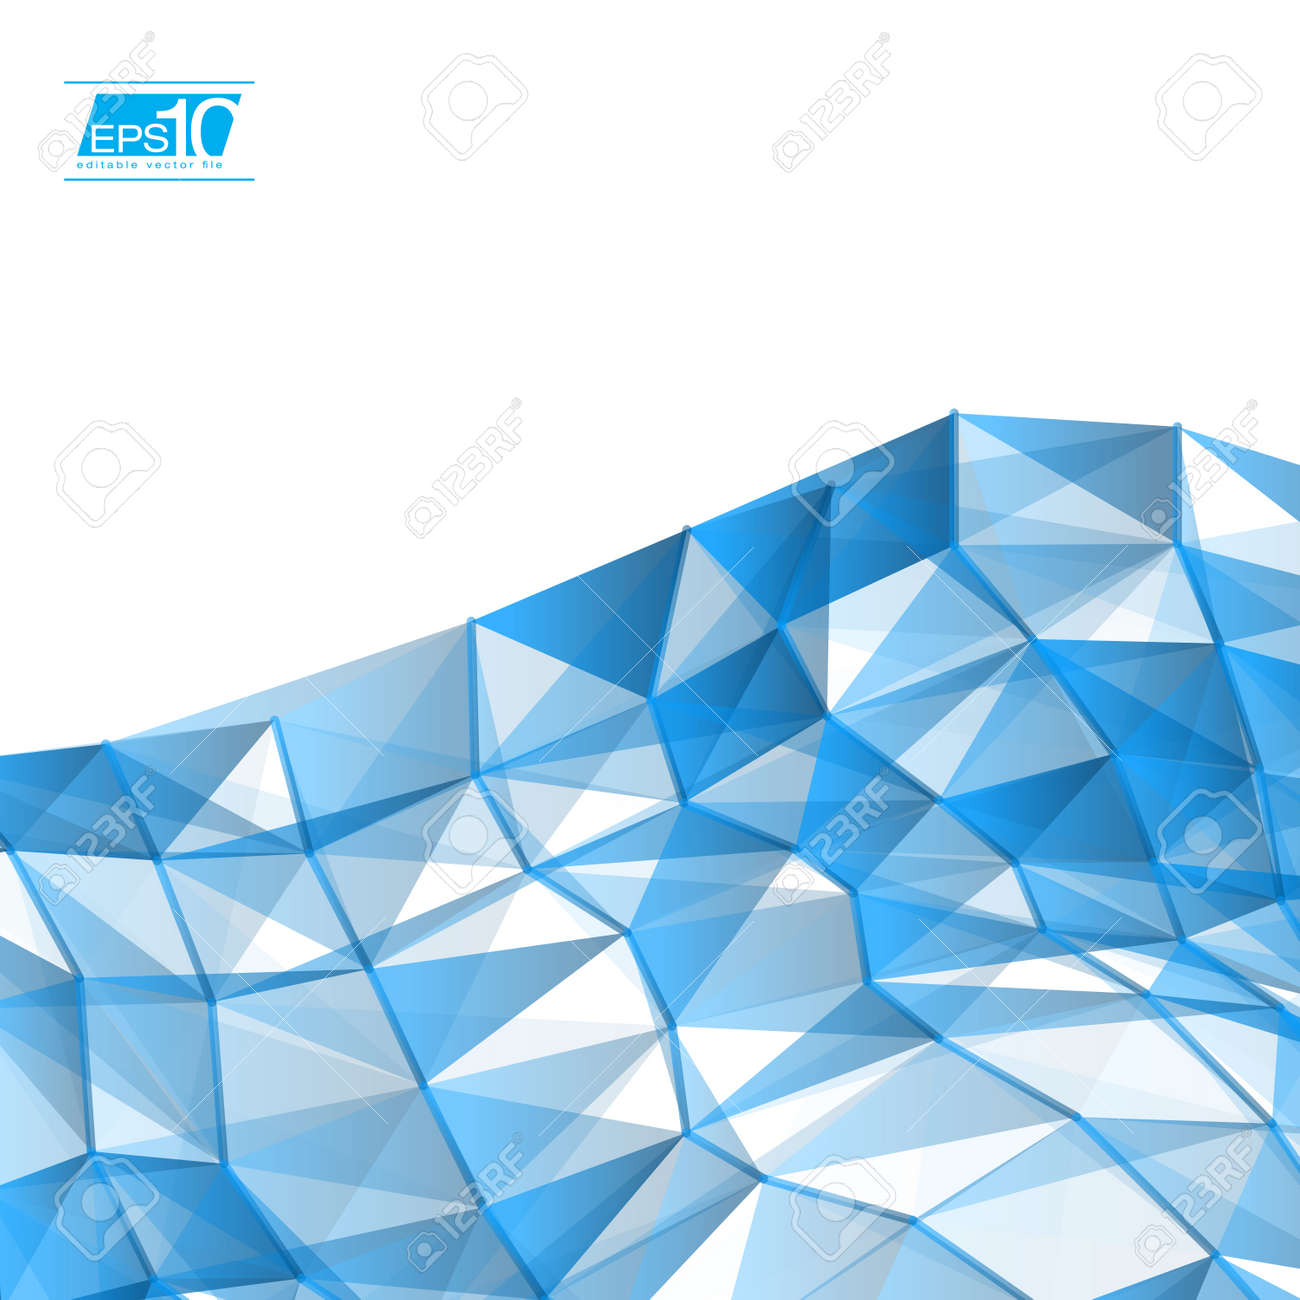 Blue Abstract Triangles Vector Background   EPS10 Business Layout Stock Vector - 18333515